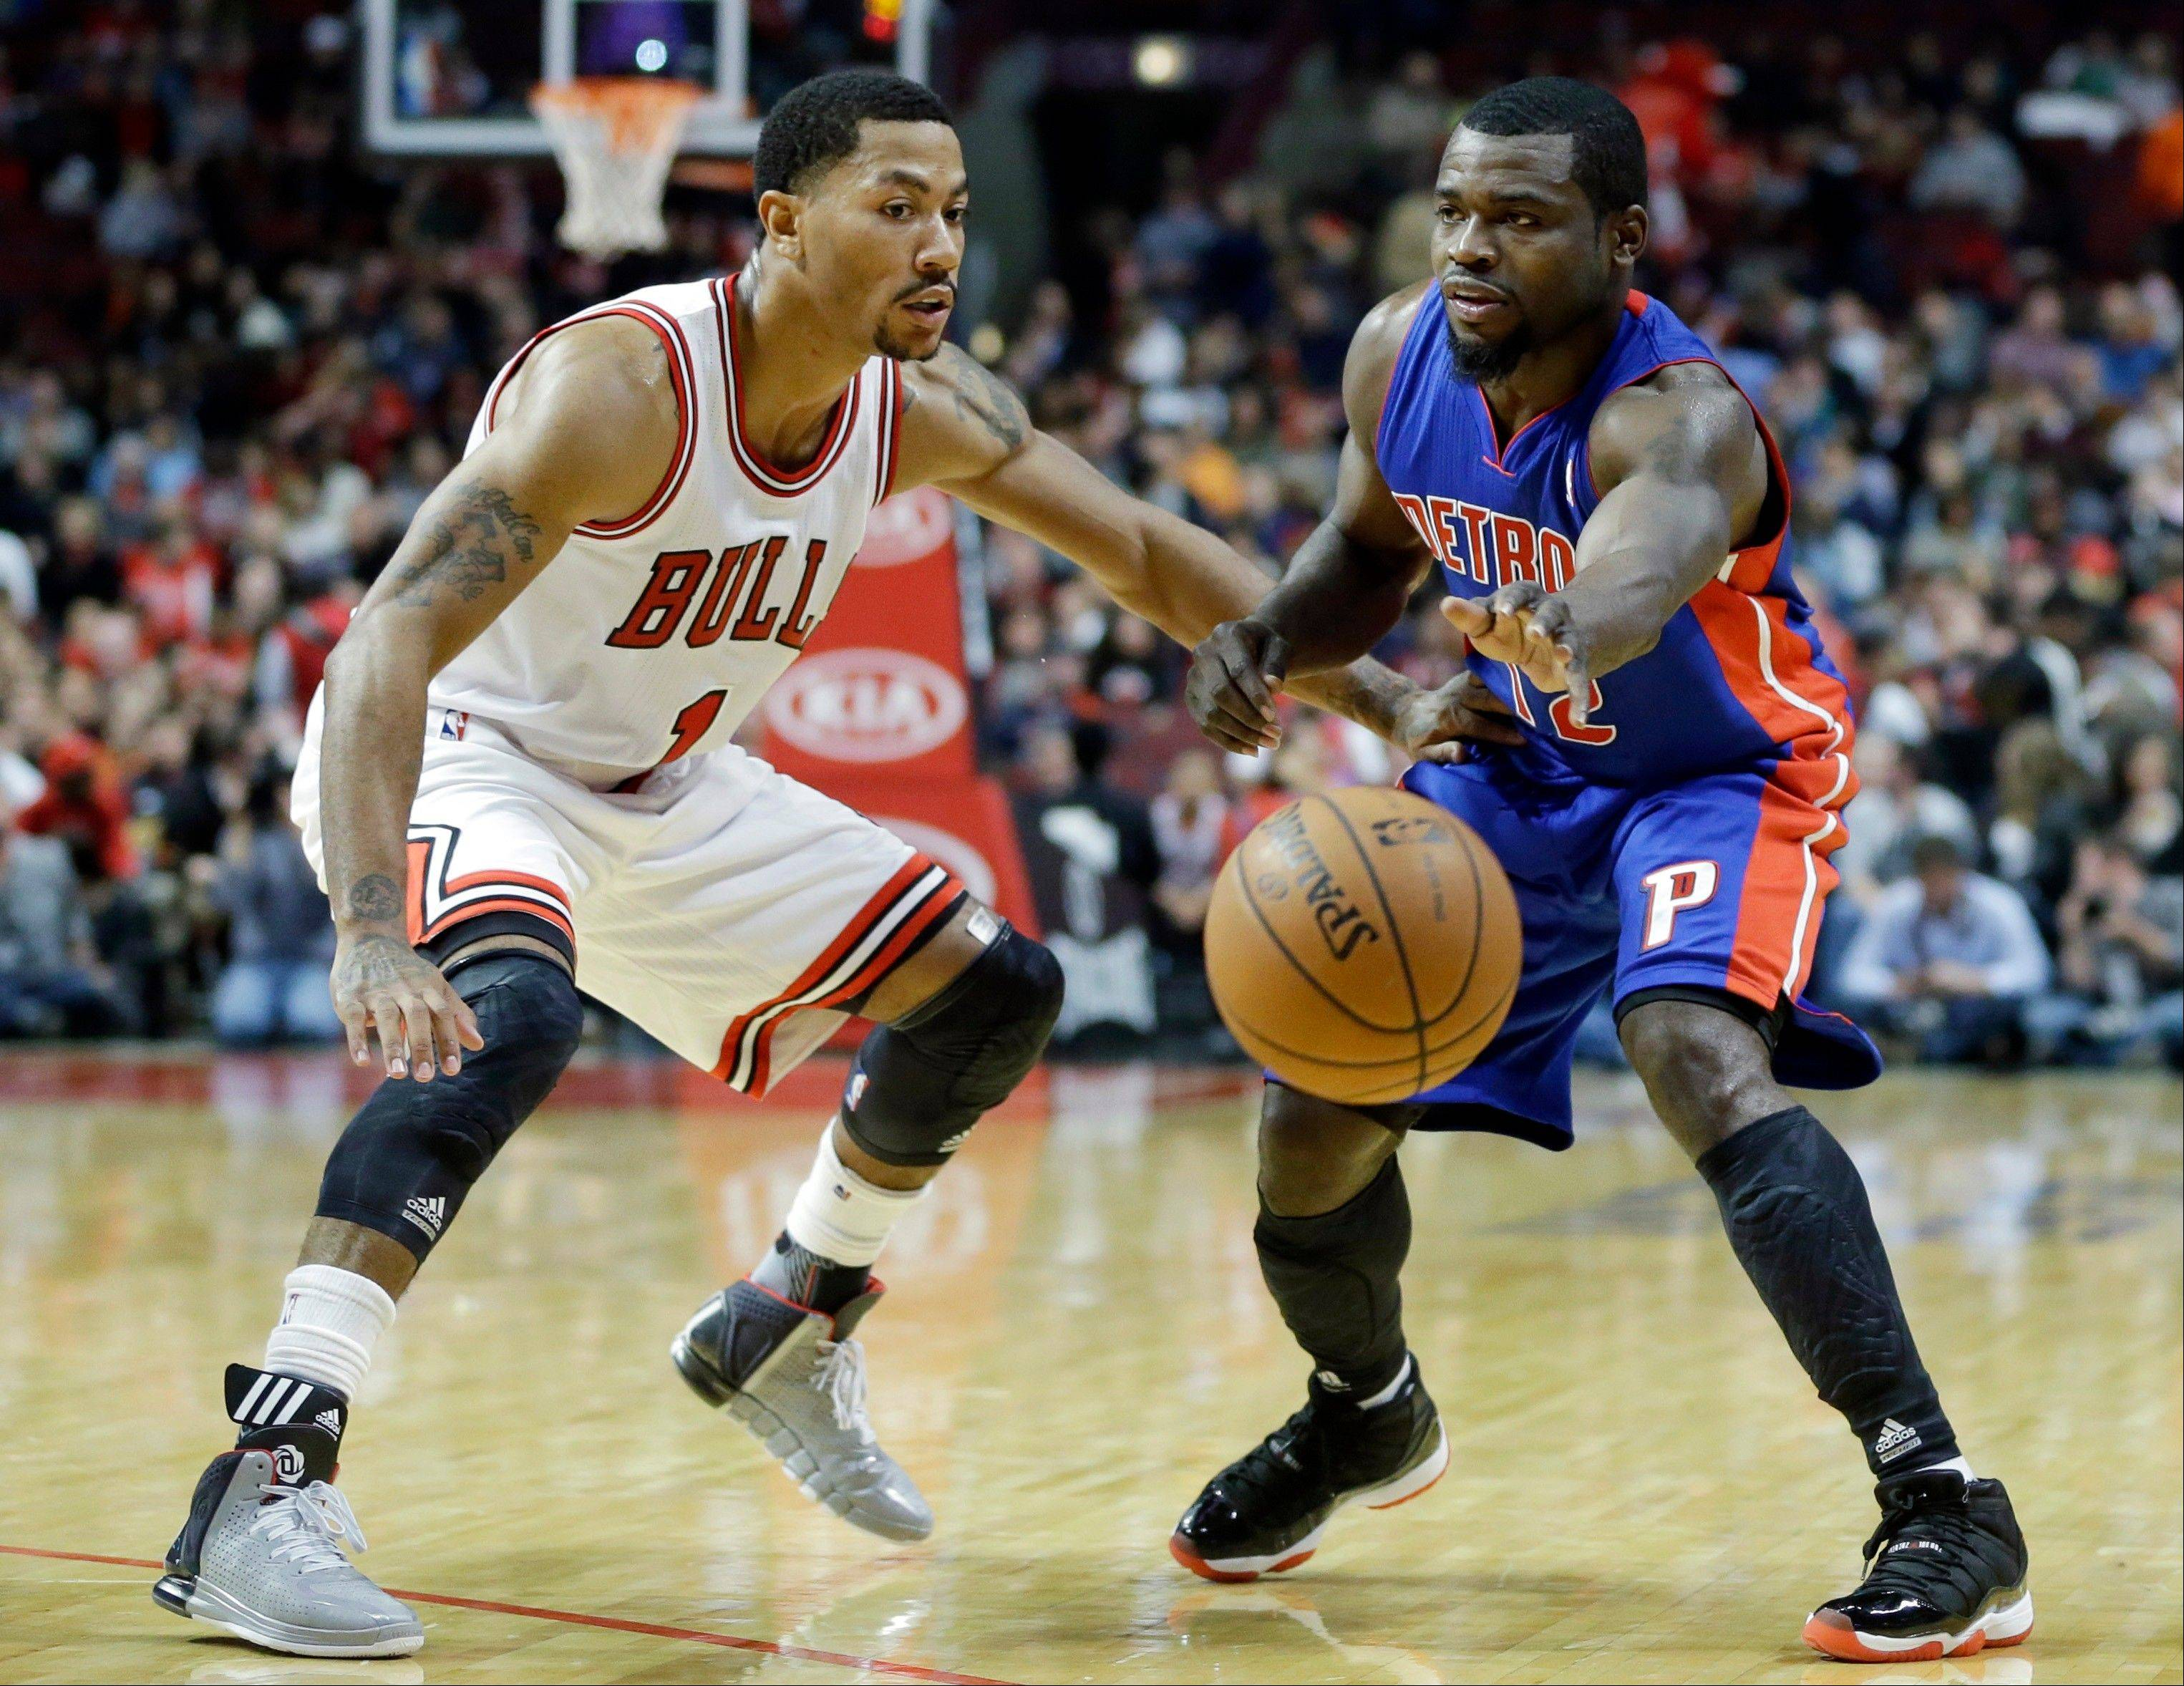 Derrick Rose guards the Pistons' Will Bynum on Wednesday night at the United Center.